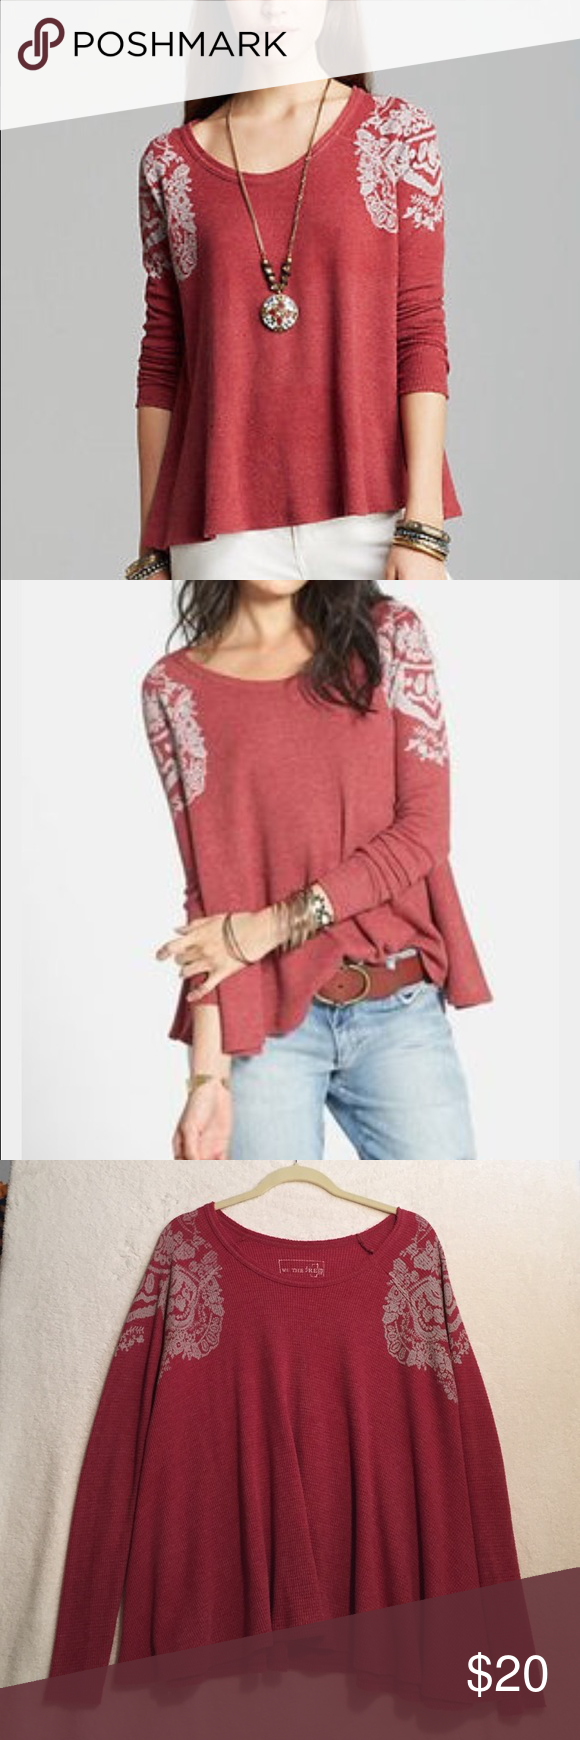 Free People Rockabilly Thermal size Large Free People Rockabilly Thermal size Large. Super cute, warm and comfy. Worn a handful of times. Raw edges. Free People Tops Tees - Long Sleeve